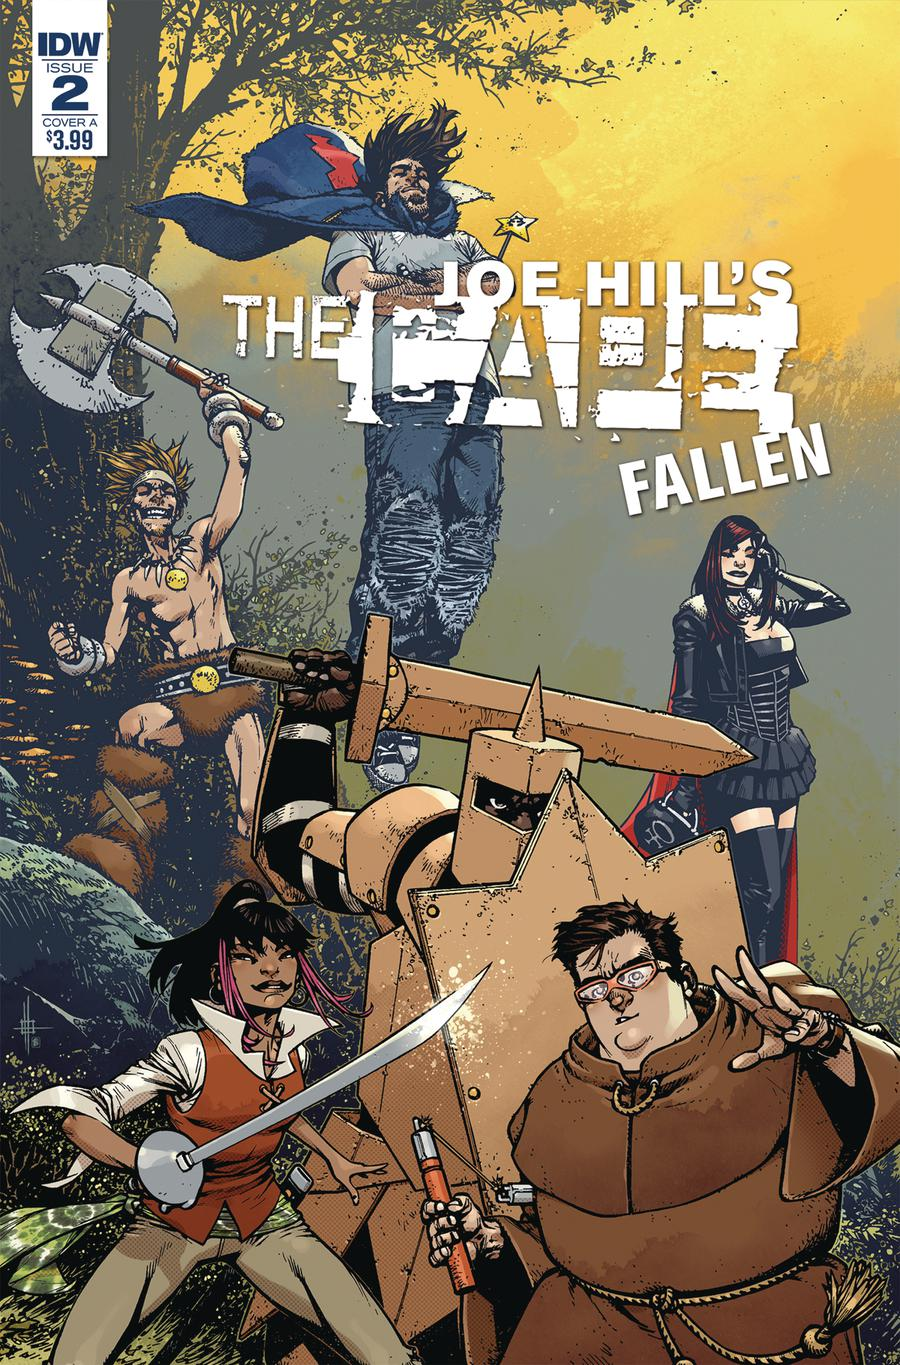 Joe Hills The Cape Fallen #2 Cover A Regular Zach Howard & Nelson Daniel Cover